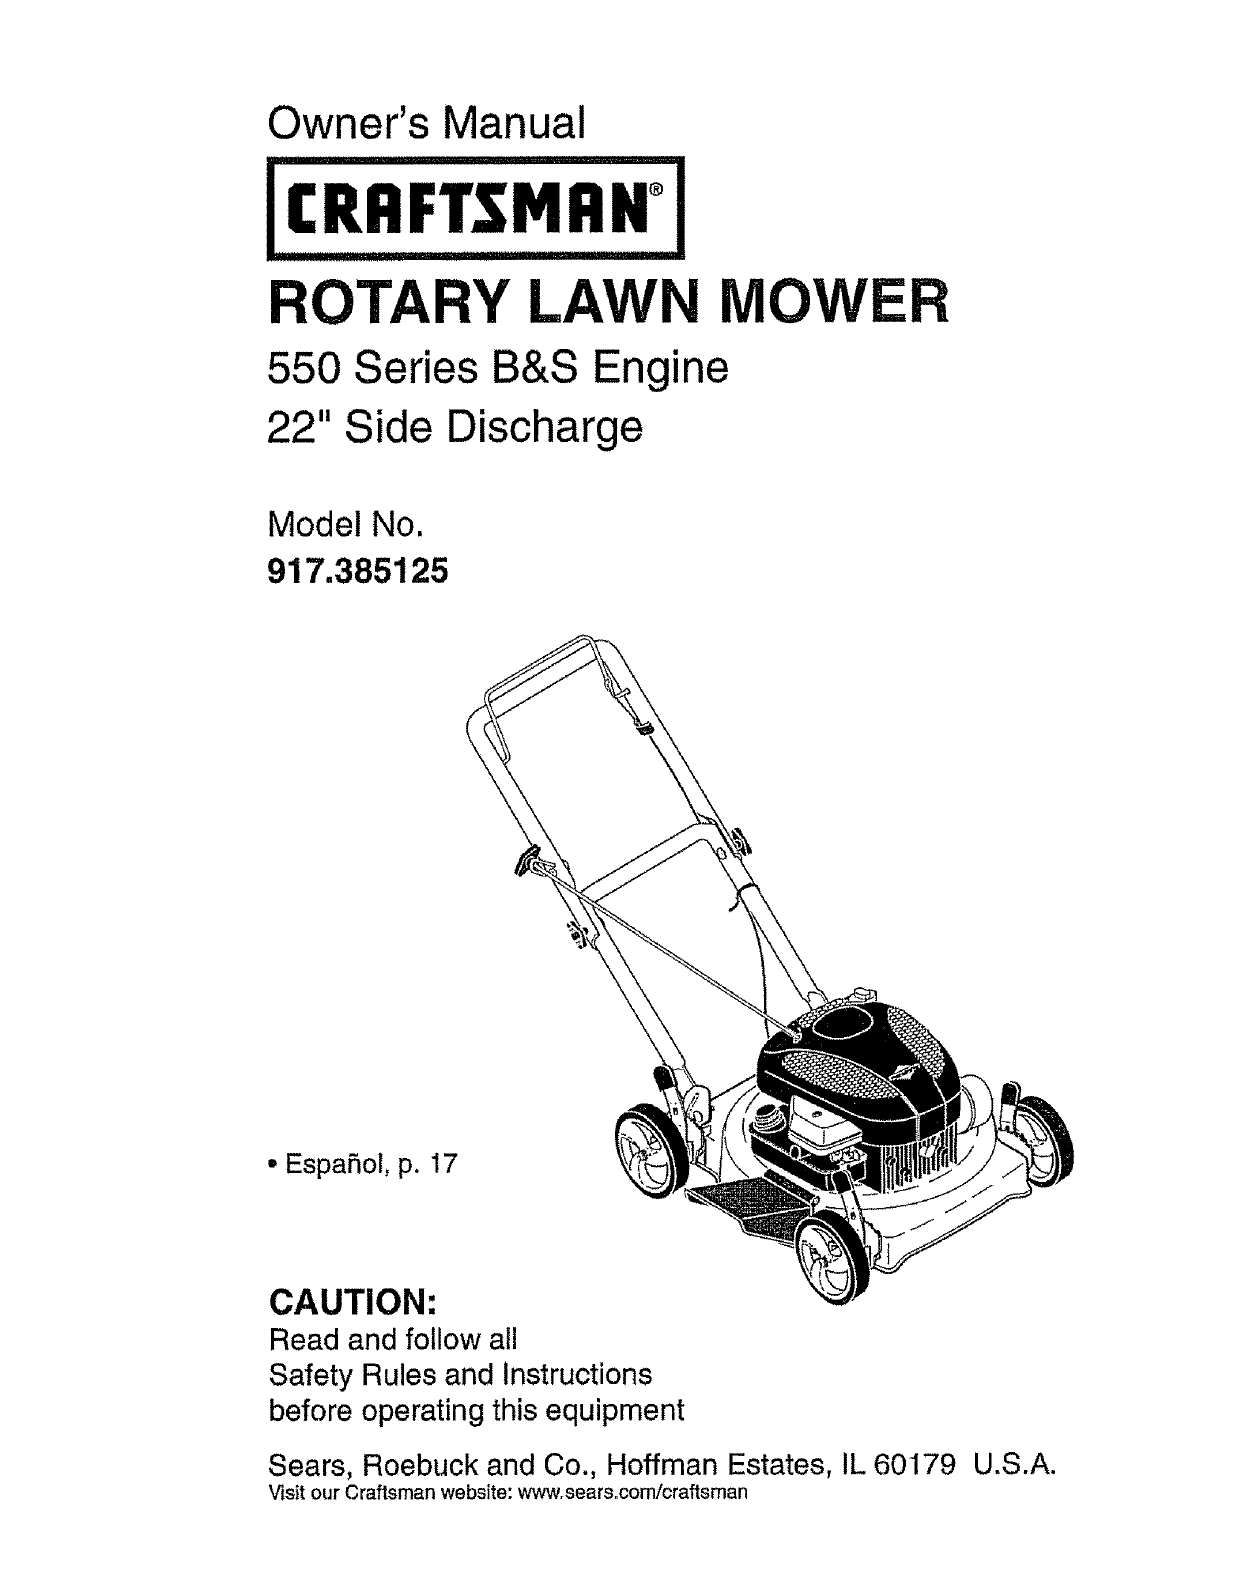 Craftsman Lawn Mower 917.385125 User Guide